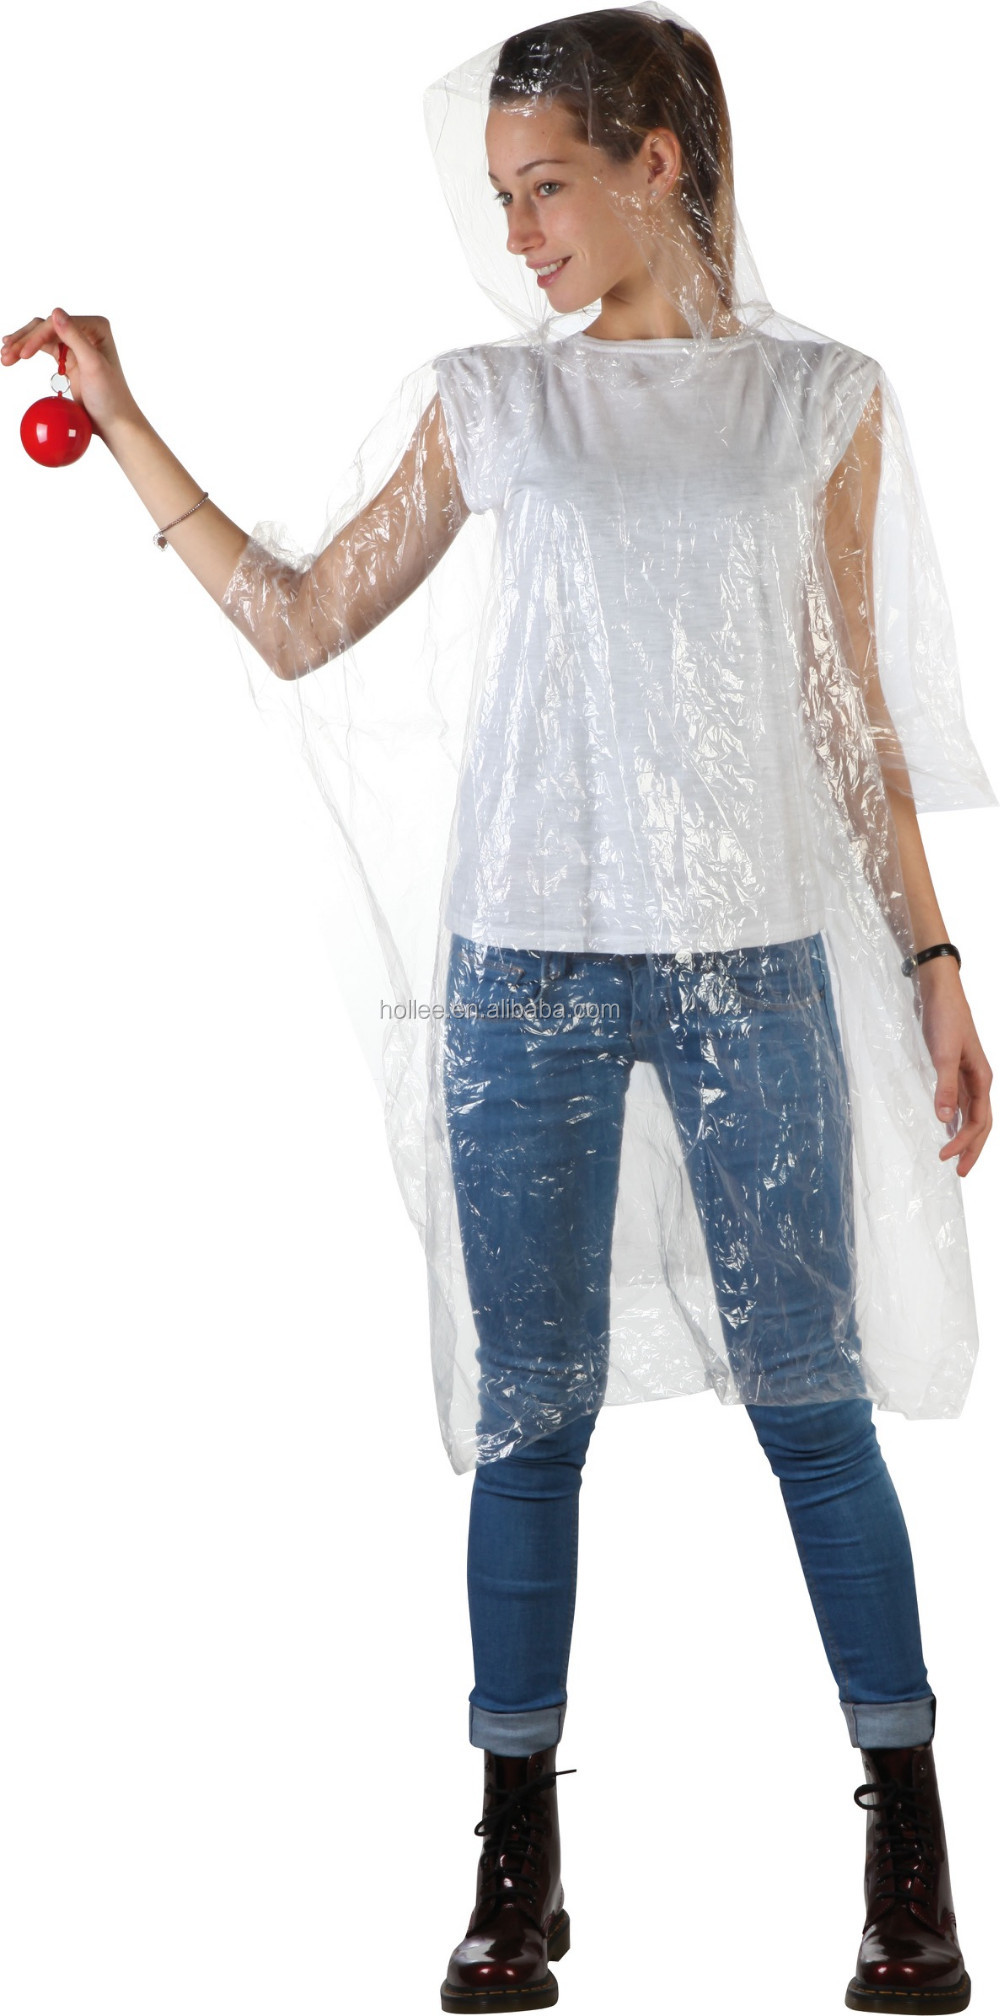 Hot selling ball rain poncho raincoat prices